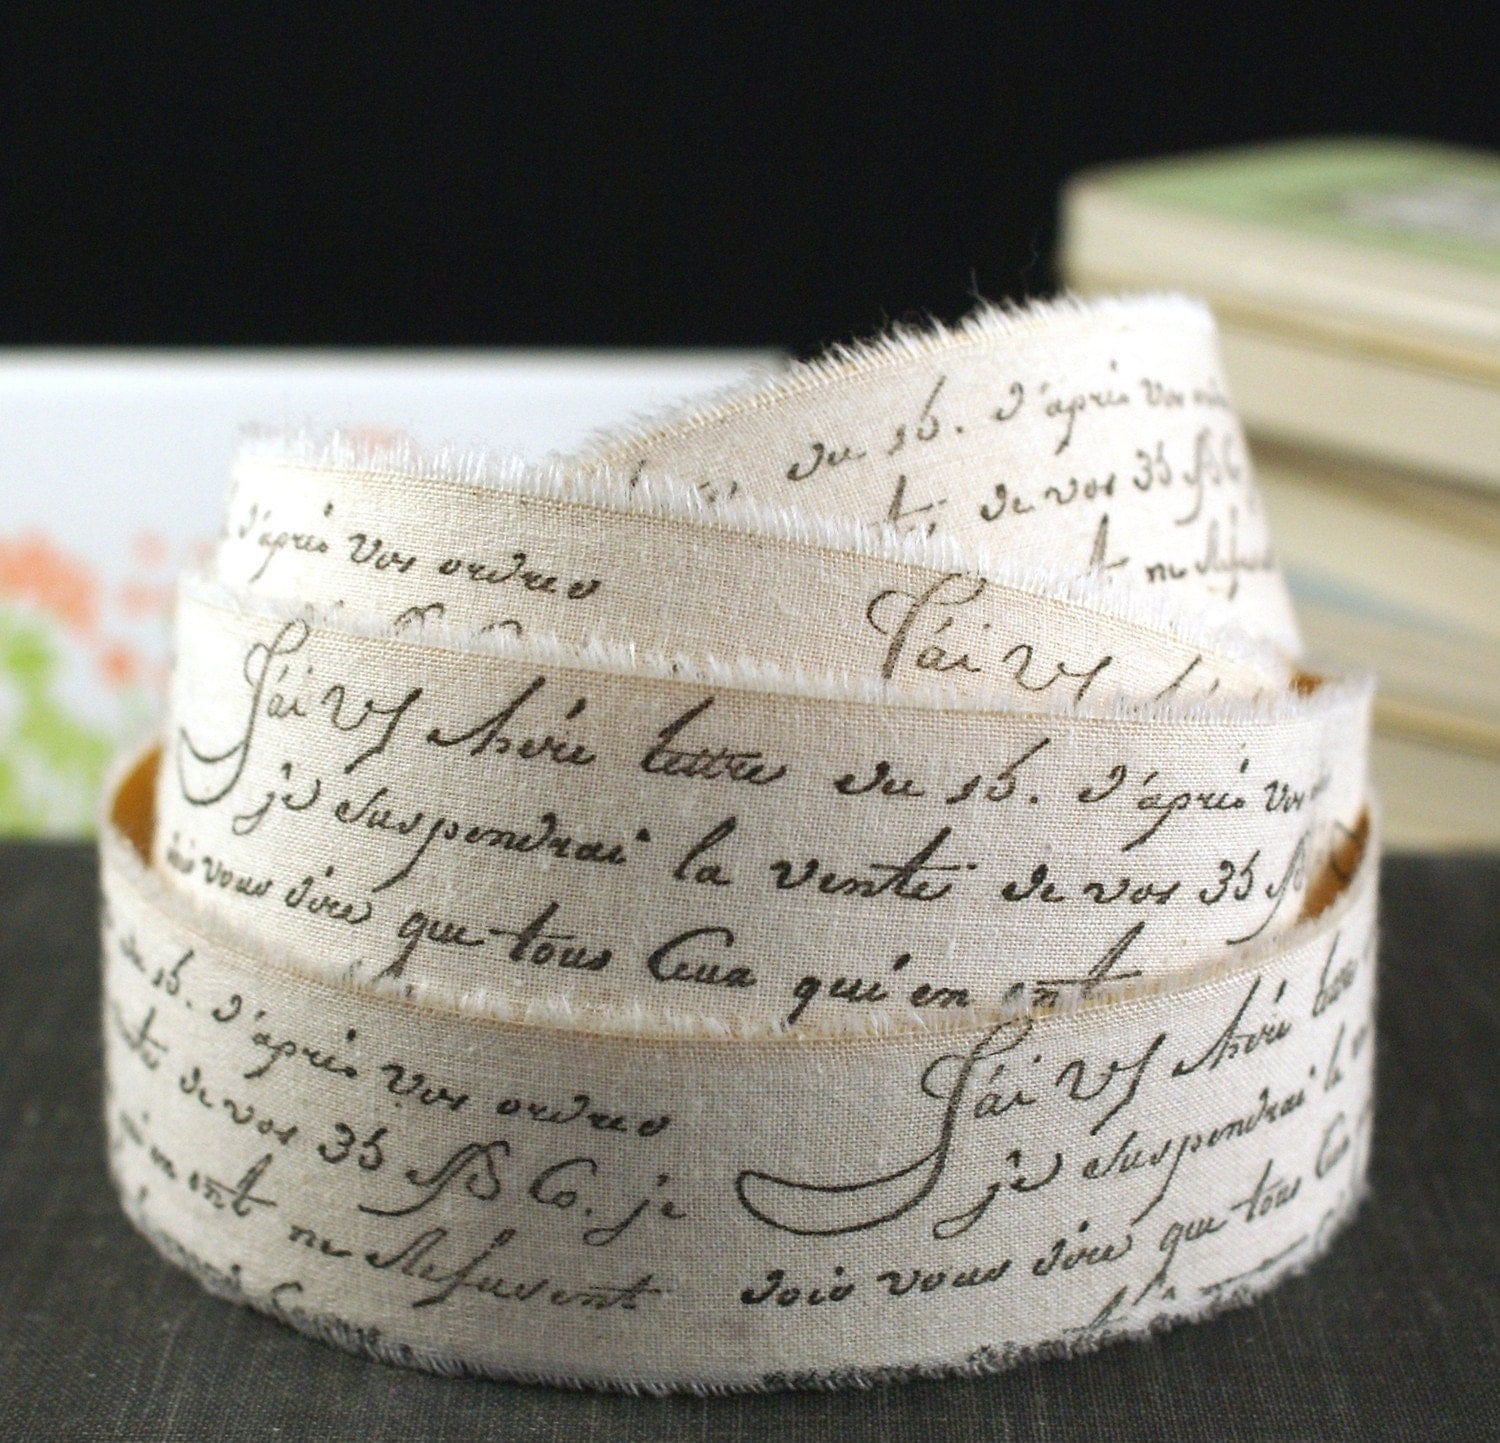 PEEL & STICK - 2 YARDS Hand Stamped French Script Words Muslin Fabric Adhesive Ribbon-for Weddings, Crafting, Scrapbooking, Gift Wrapping, Decorating, Party Favor